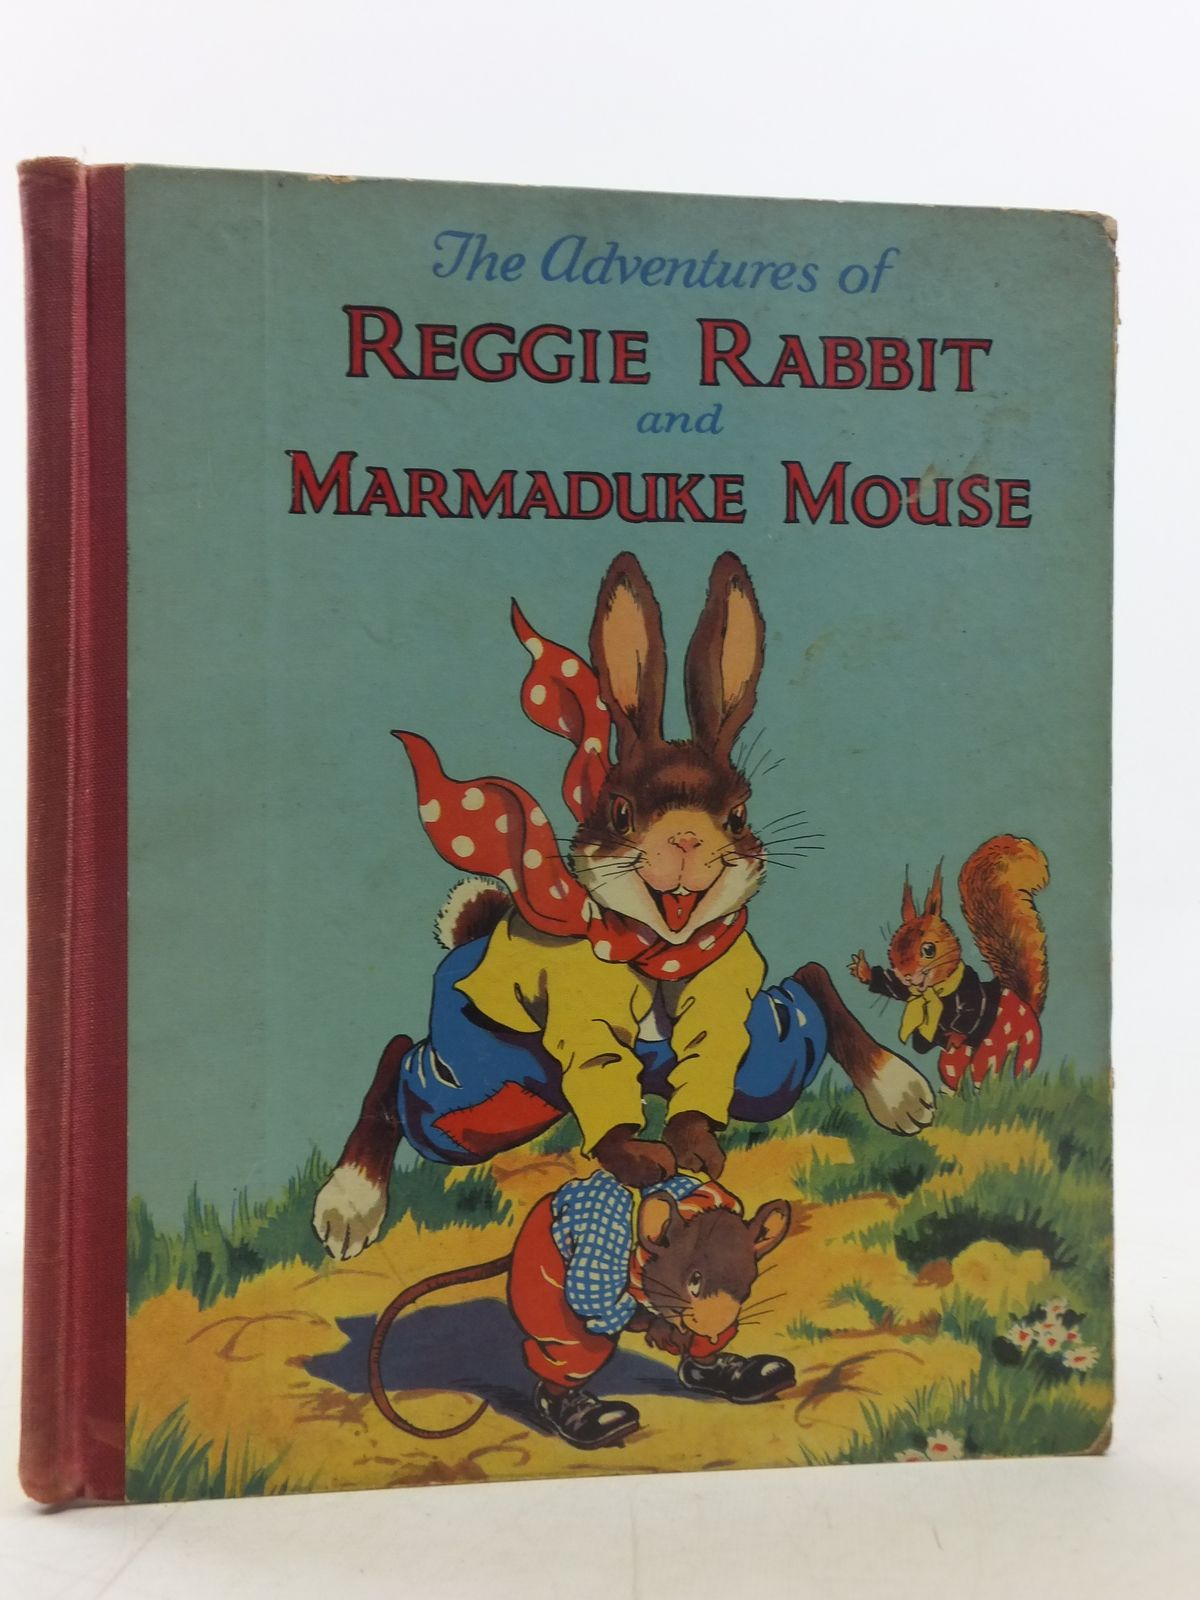 Photo of THE ADVENTURES OF REGGIE RABBIT AND MARMADUKE MOUSE written by Harford, V. illustrated by Davie, E.H. published by Juvenile Productions Ltd. (STOCK CODE: 2117717)  for sale by Stella & Rose's Books